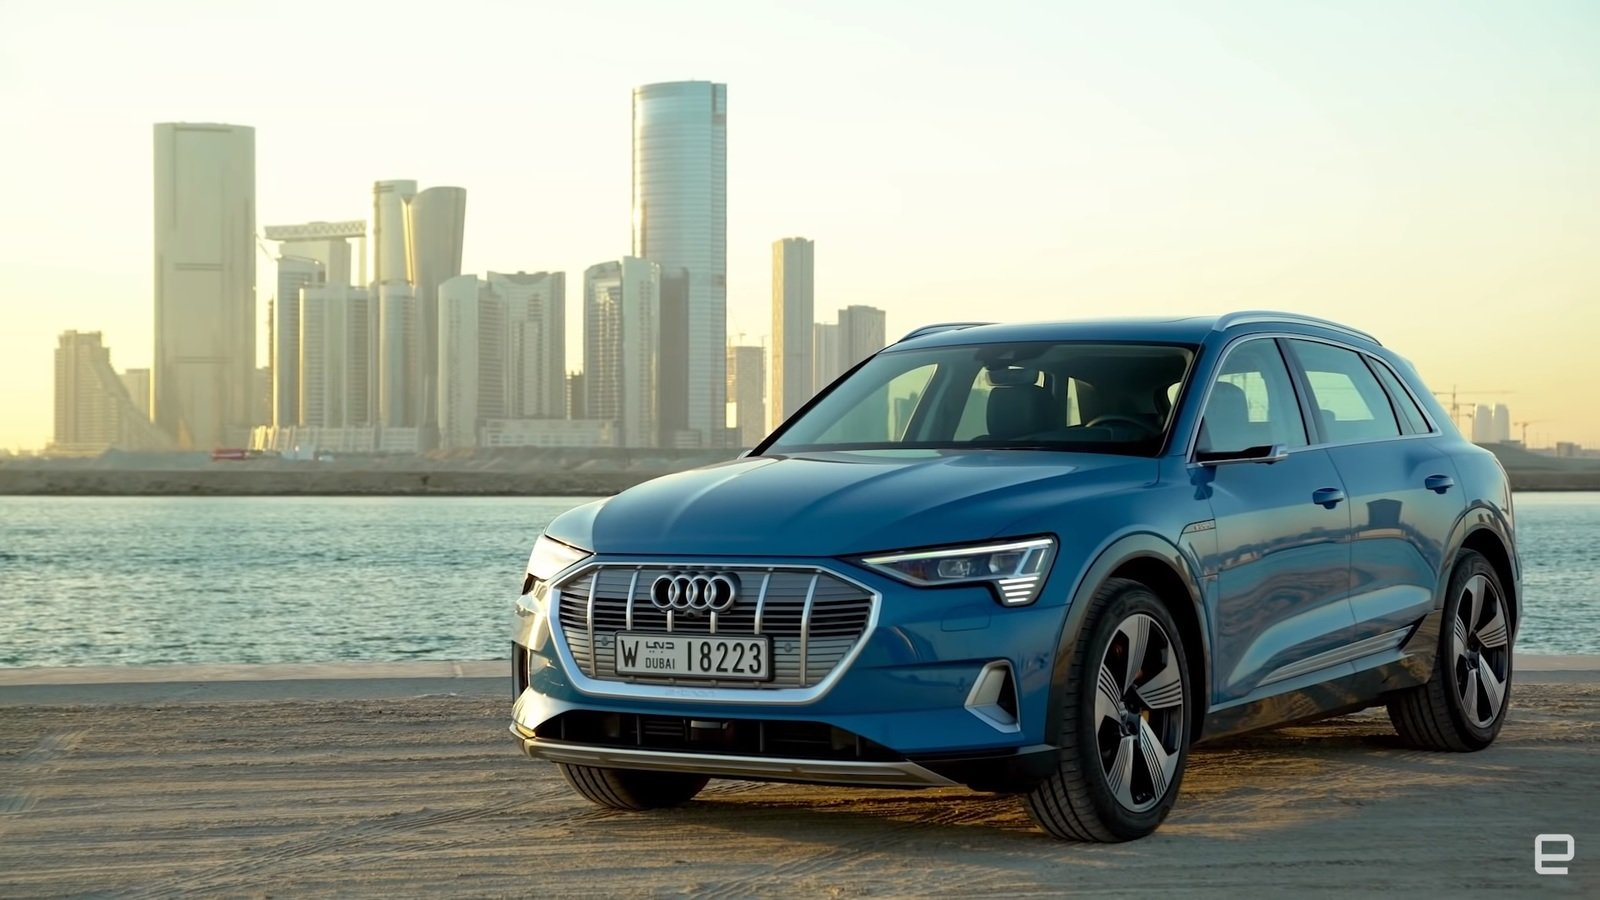 Reviewers Try Out The New All-Electric 2019 Audi E-Tron